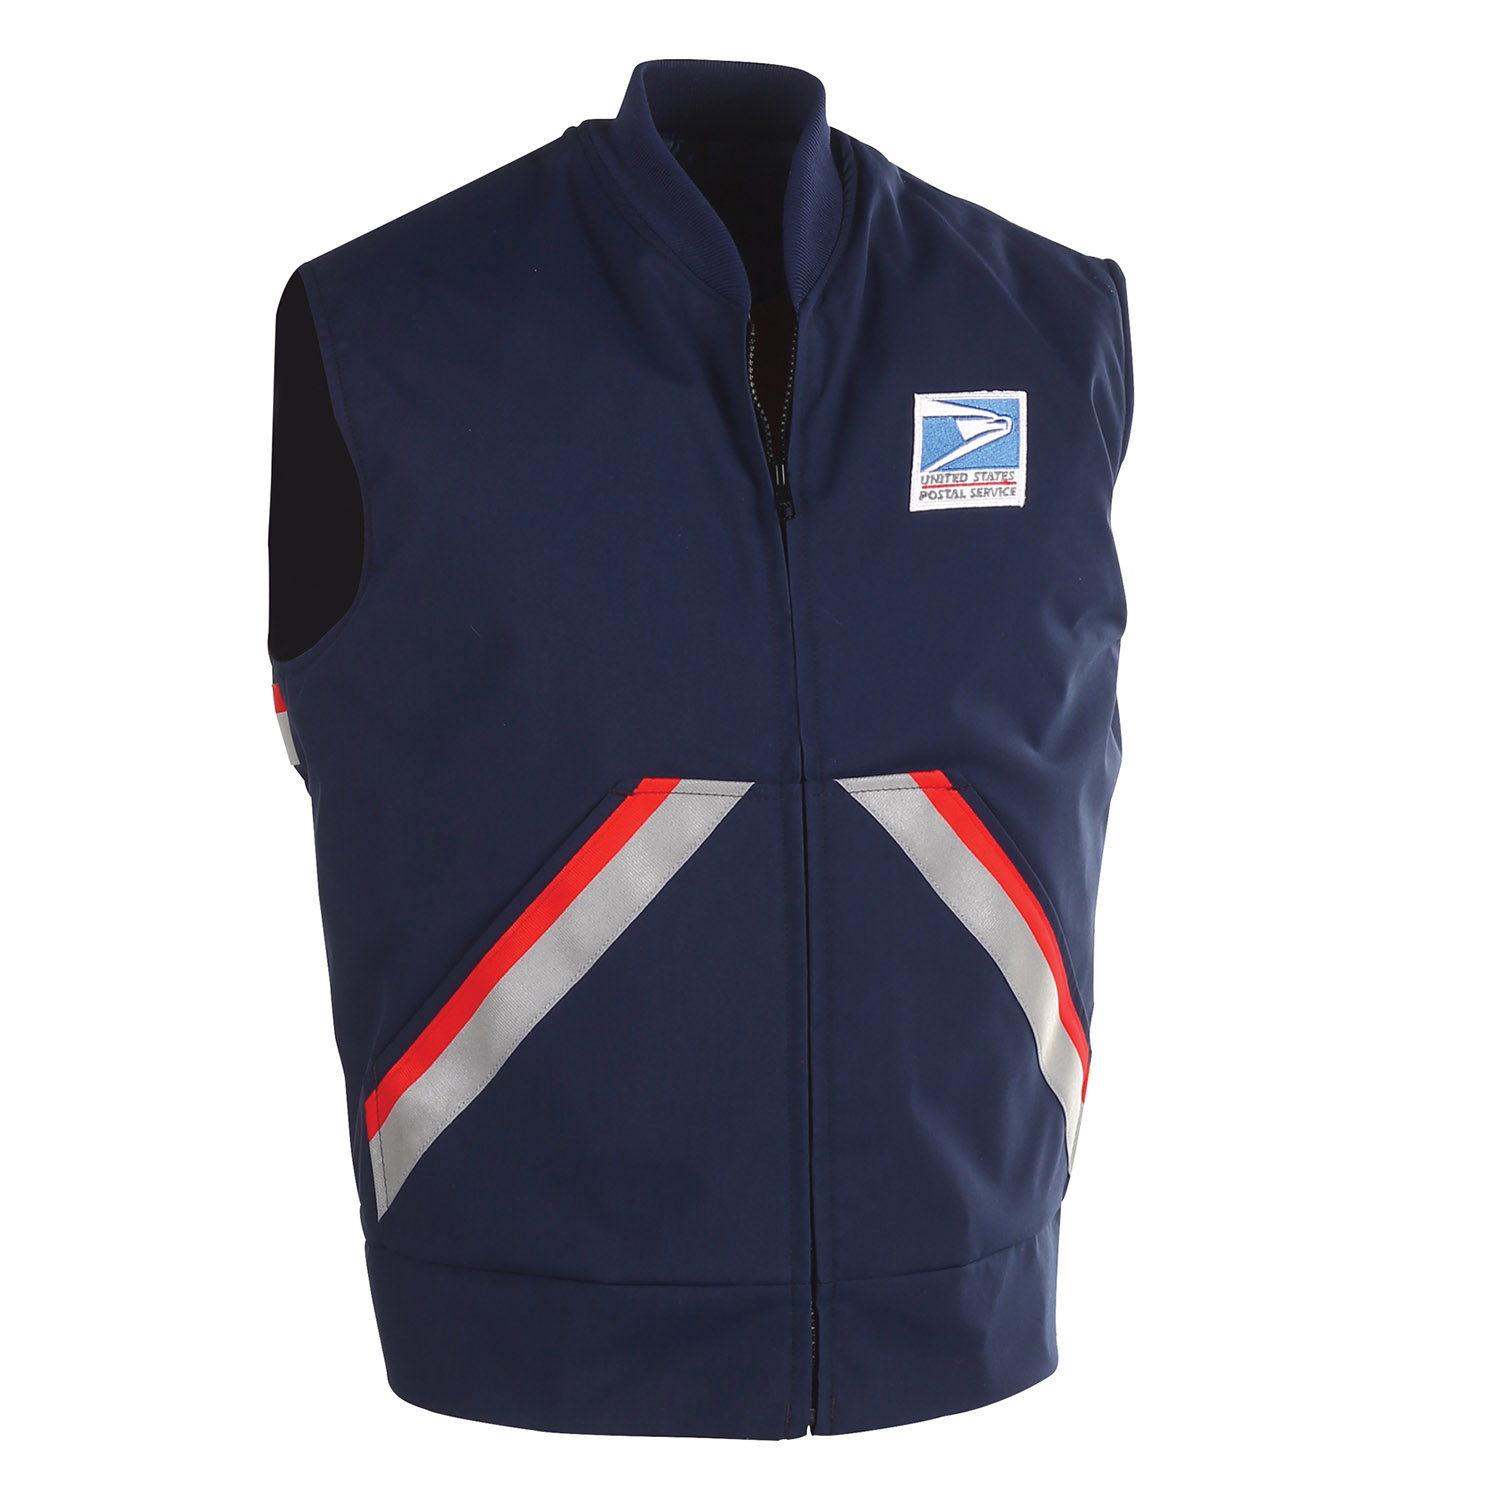 You. letter carrier uniform one sucking the